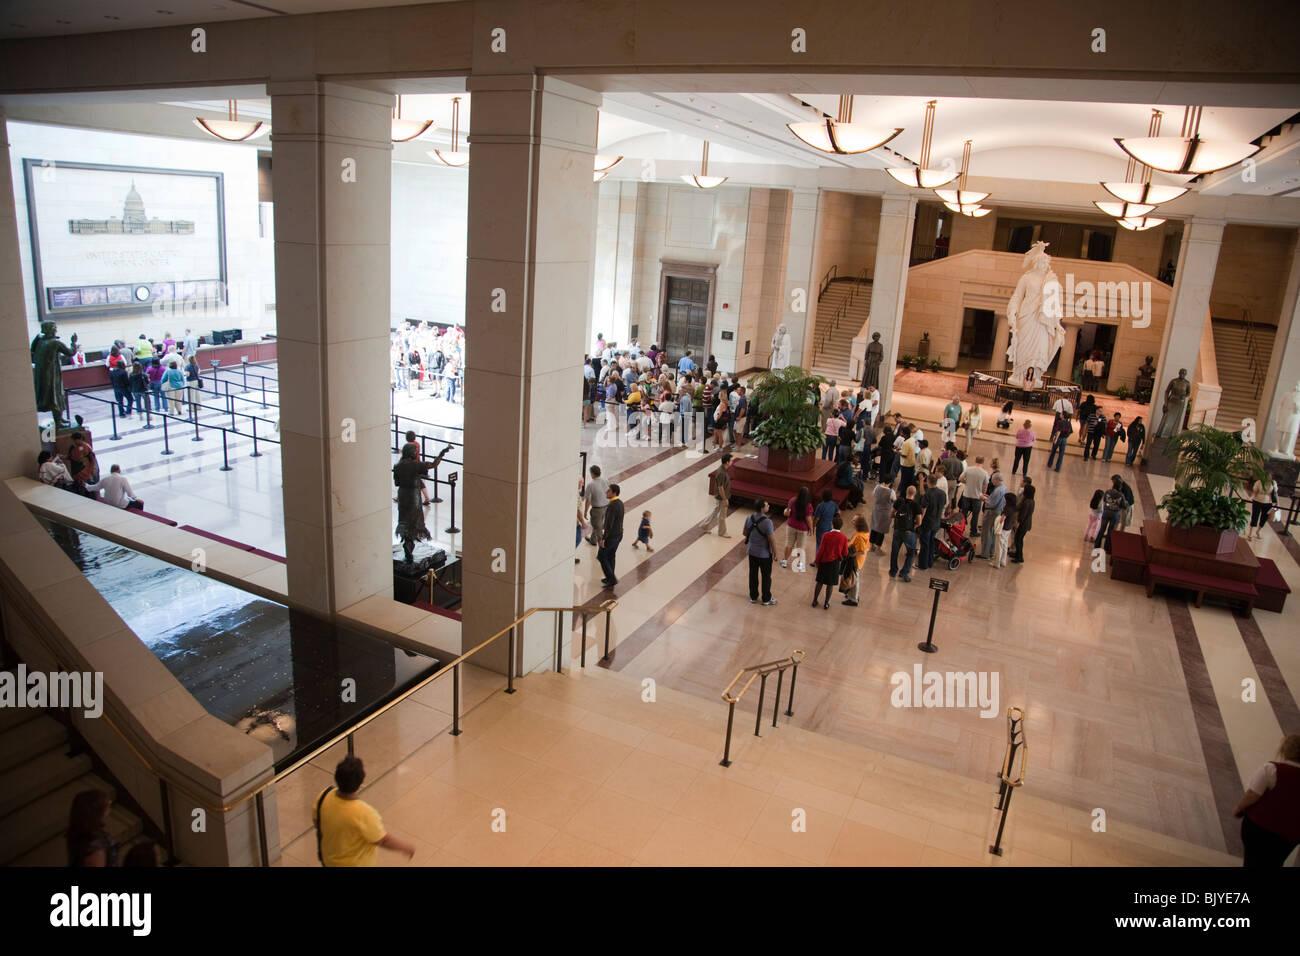 Visitors Wait In Line At The United States Capitol Visitor Center Stock Photo Alamy